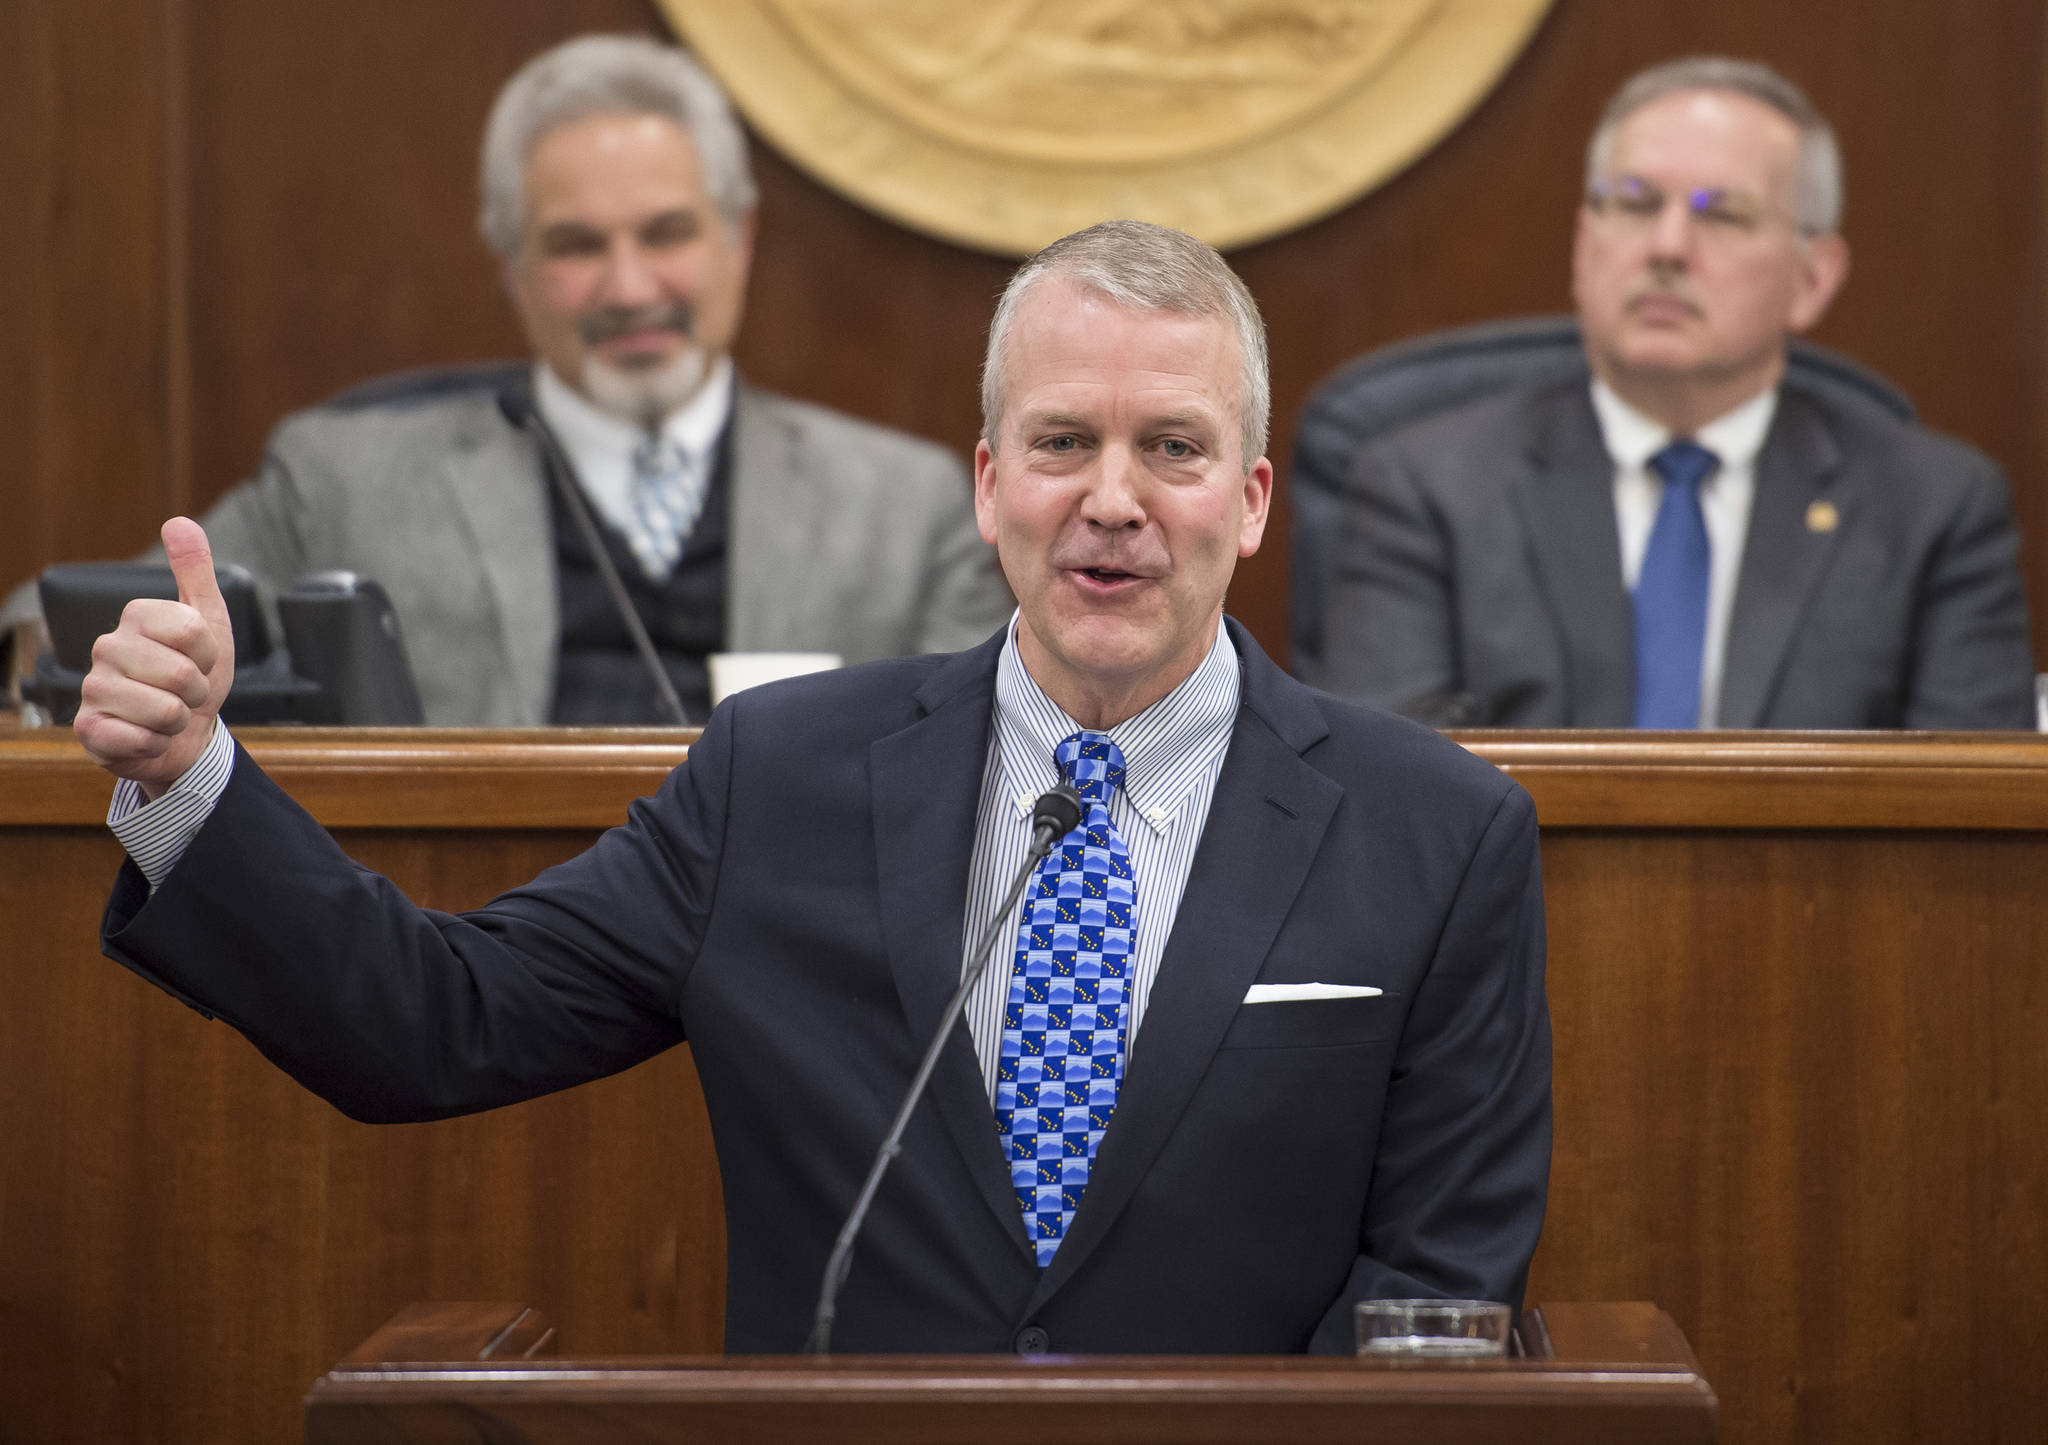 In this Feb. 26, 2018 photo, U.S. Sen. Dan Sullivan, R-Alaska, gives a thumbs up while speaking about the opening of the Arctic National Wildlife Refuge to oil drilling during his annual speech to a joint session of the Alaska Legislature at the Capitol. (Michael Penn | Juneau Empire File)